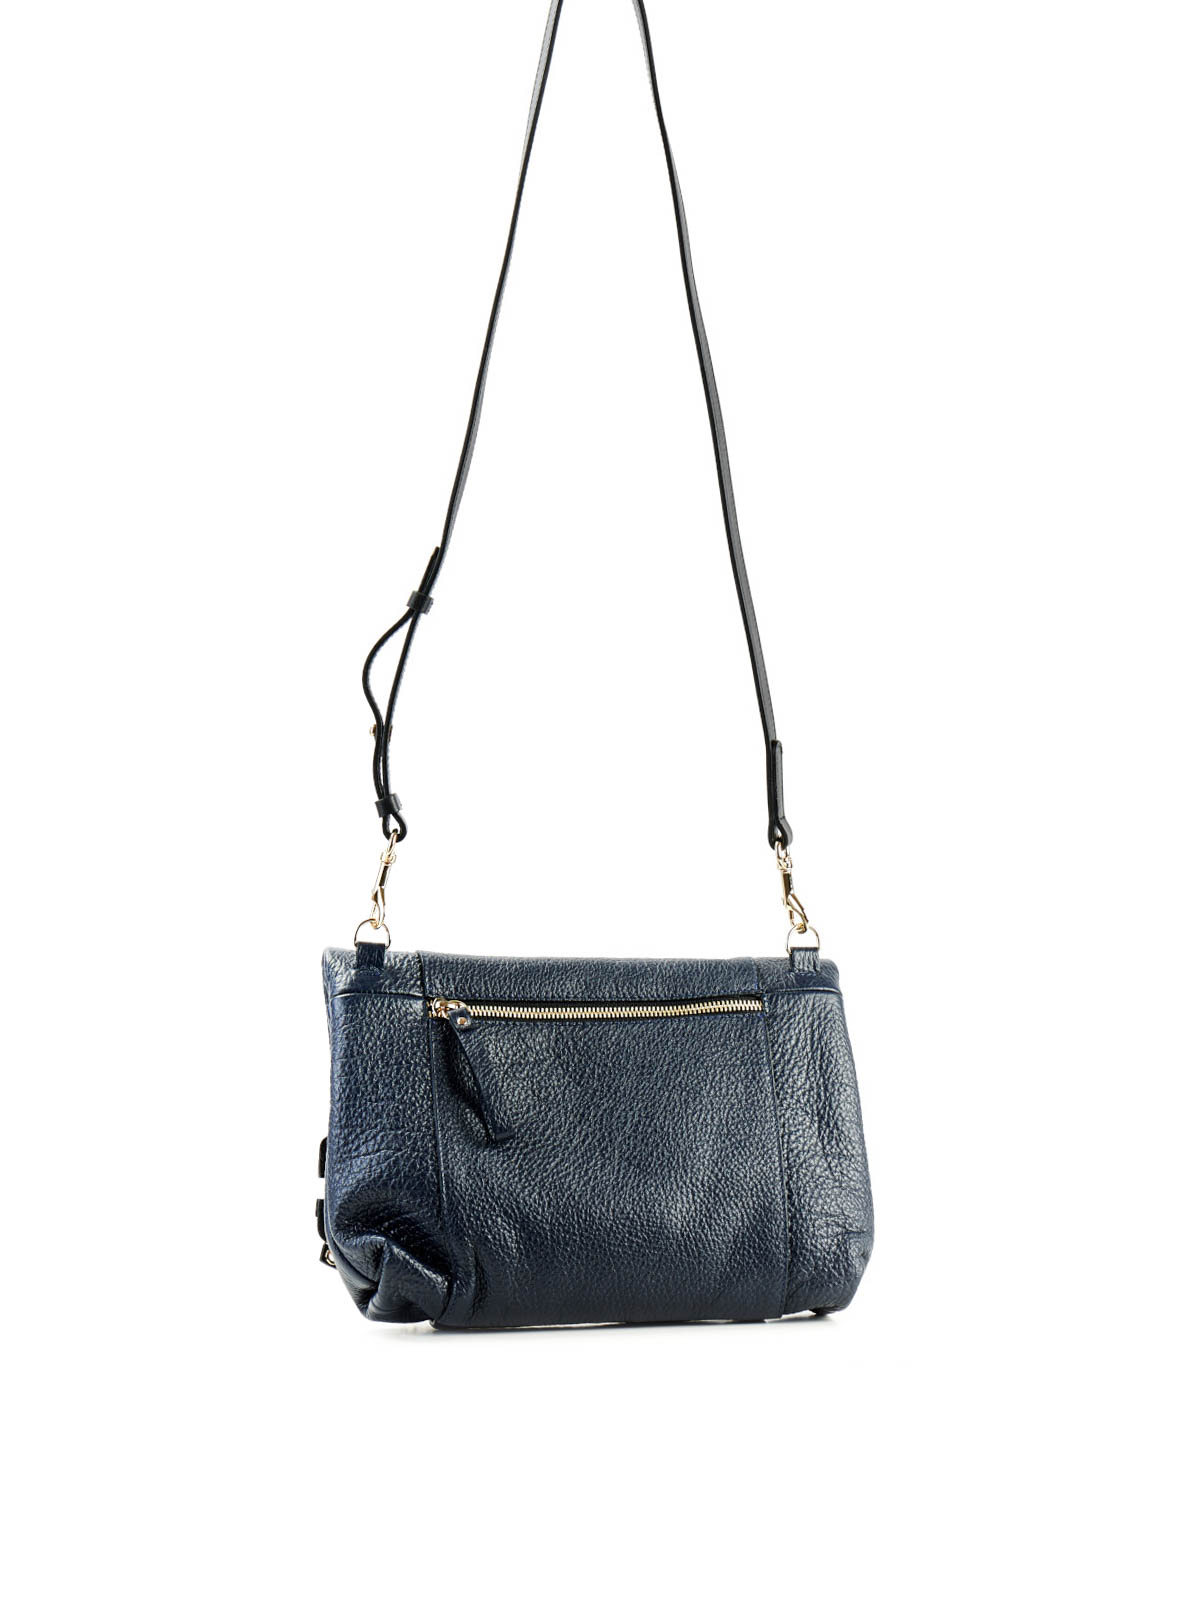 chloe bag replica - Zoey fold-over cross body bag by See by Chlo�� - cross body bags ...